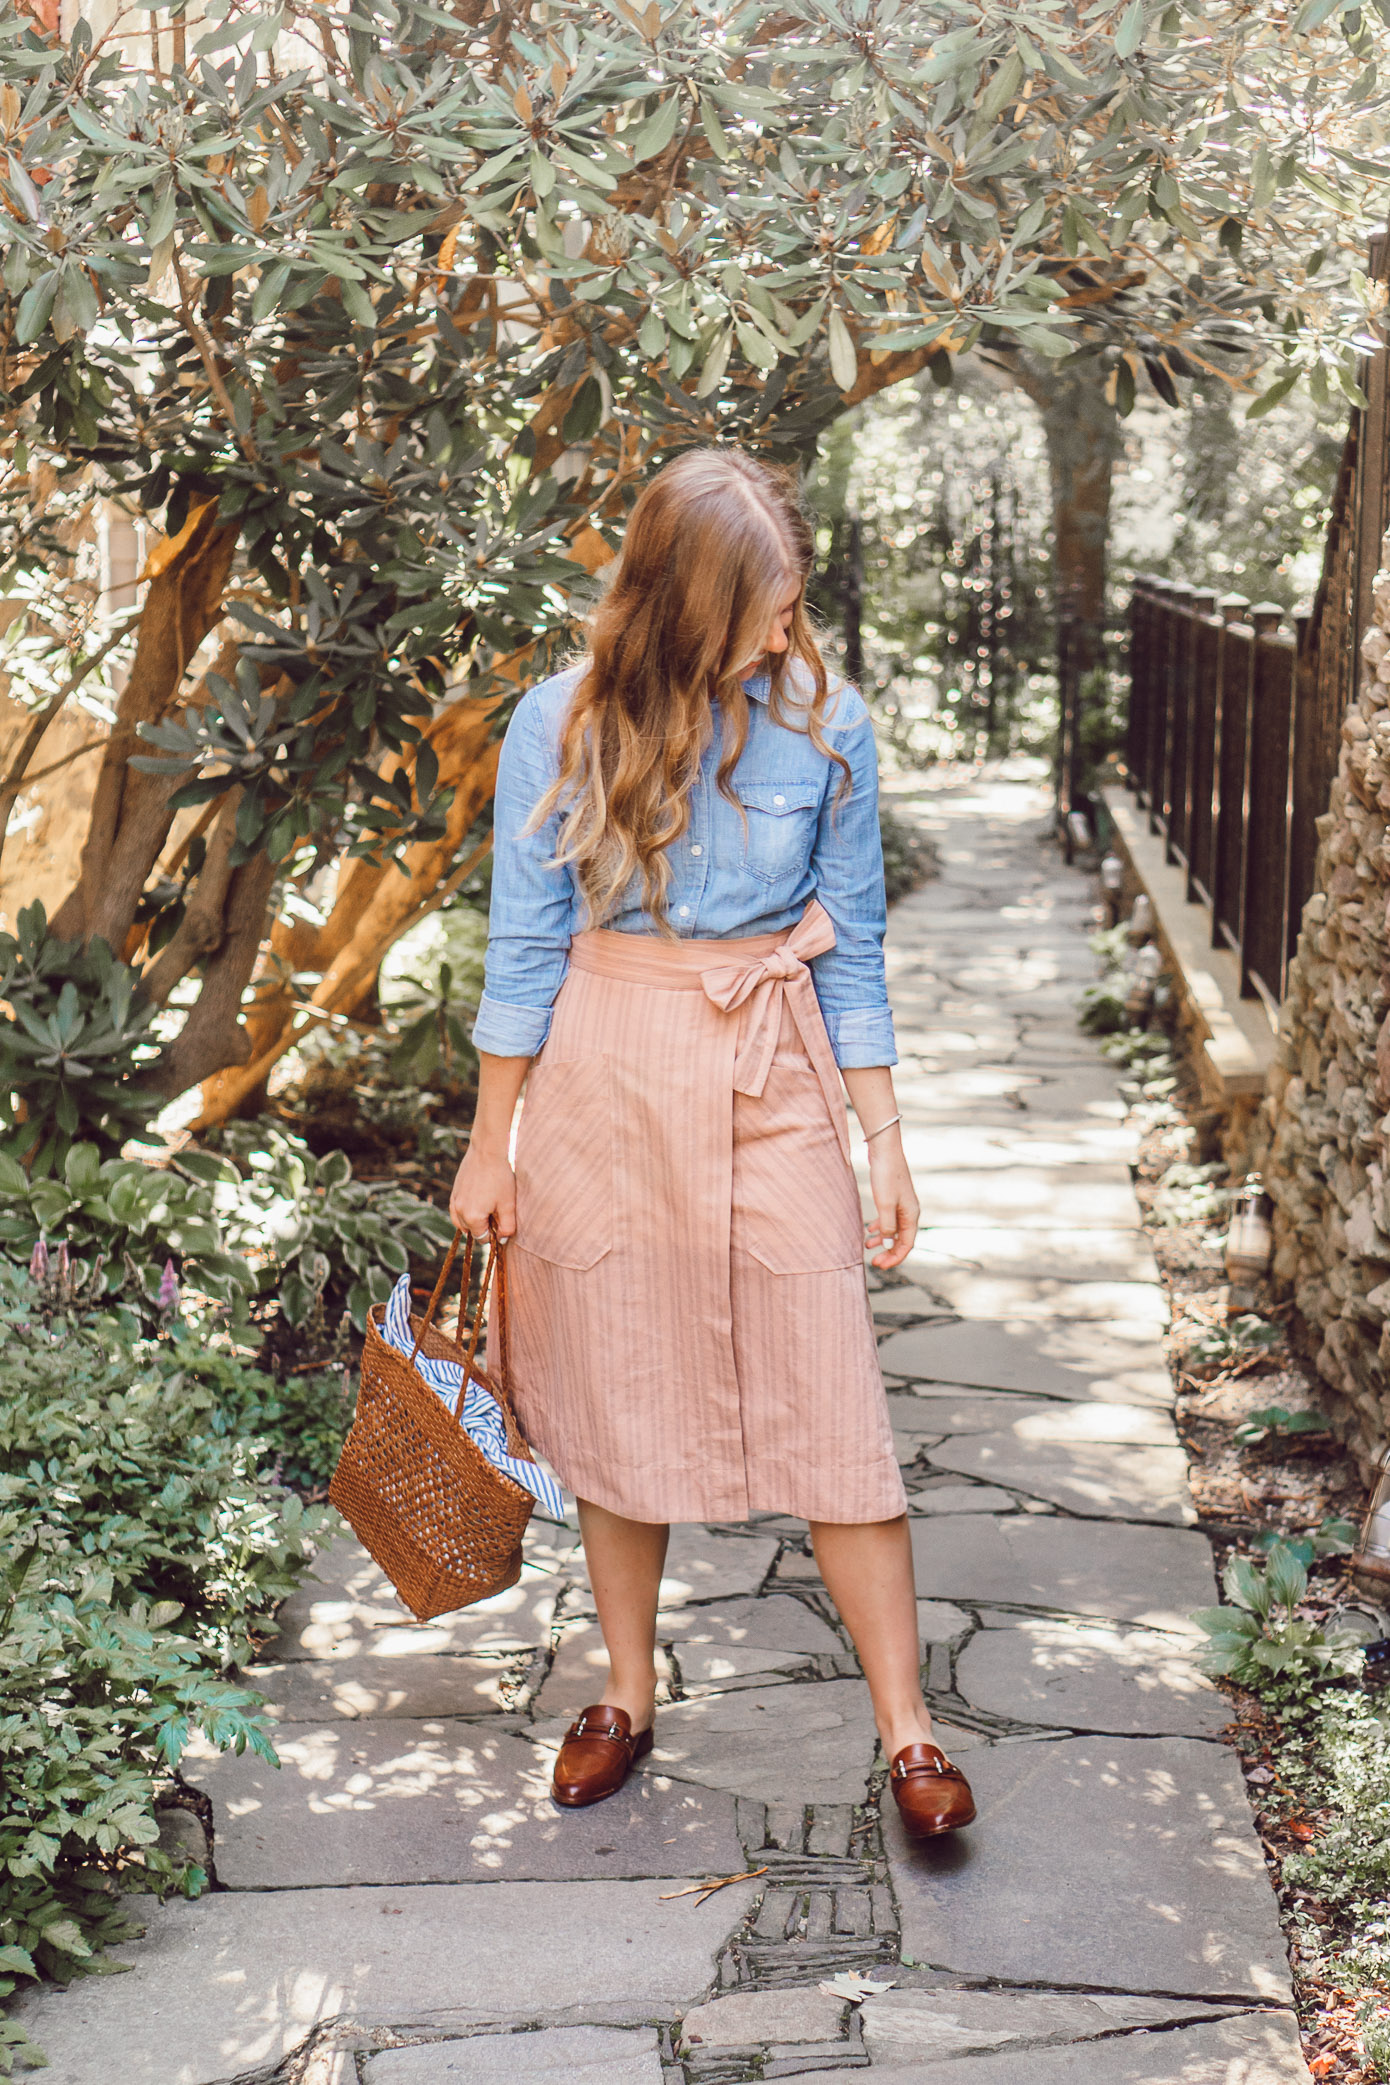 Fall Chambray Three Ways for Three Different Body Types | How to Style a Chambray Shirt Three Ways for the Fall Season featured on Louella Reese